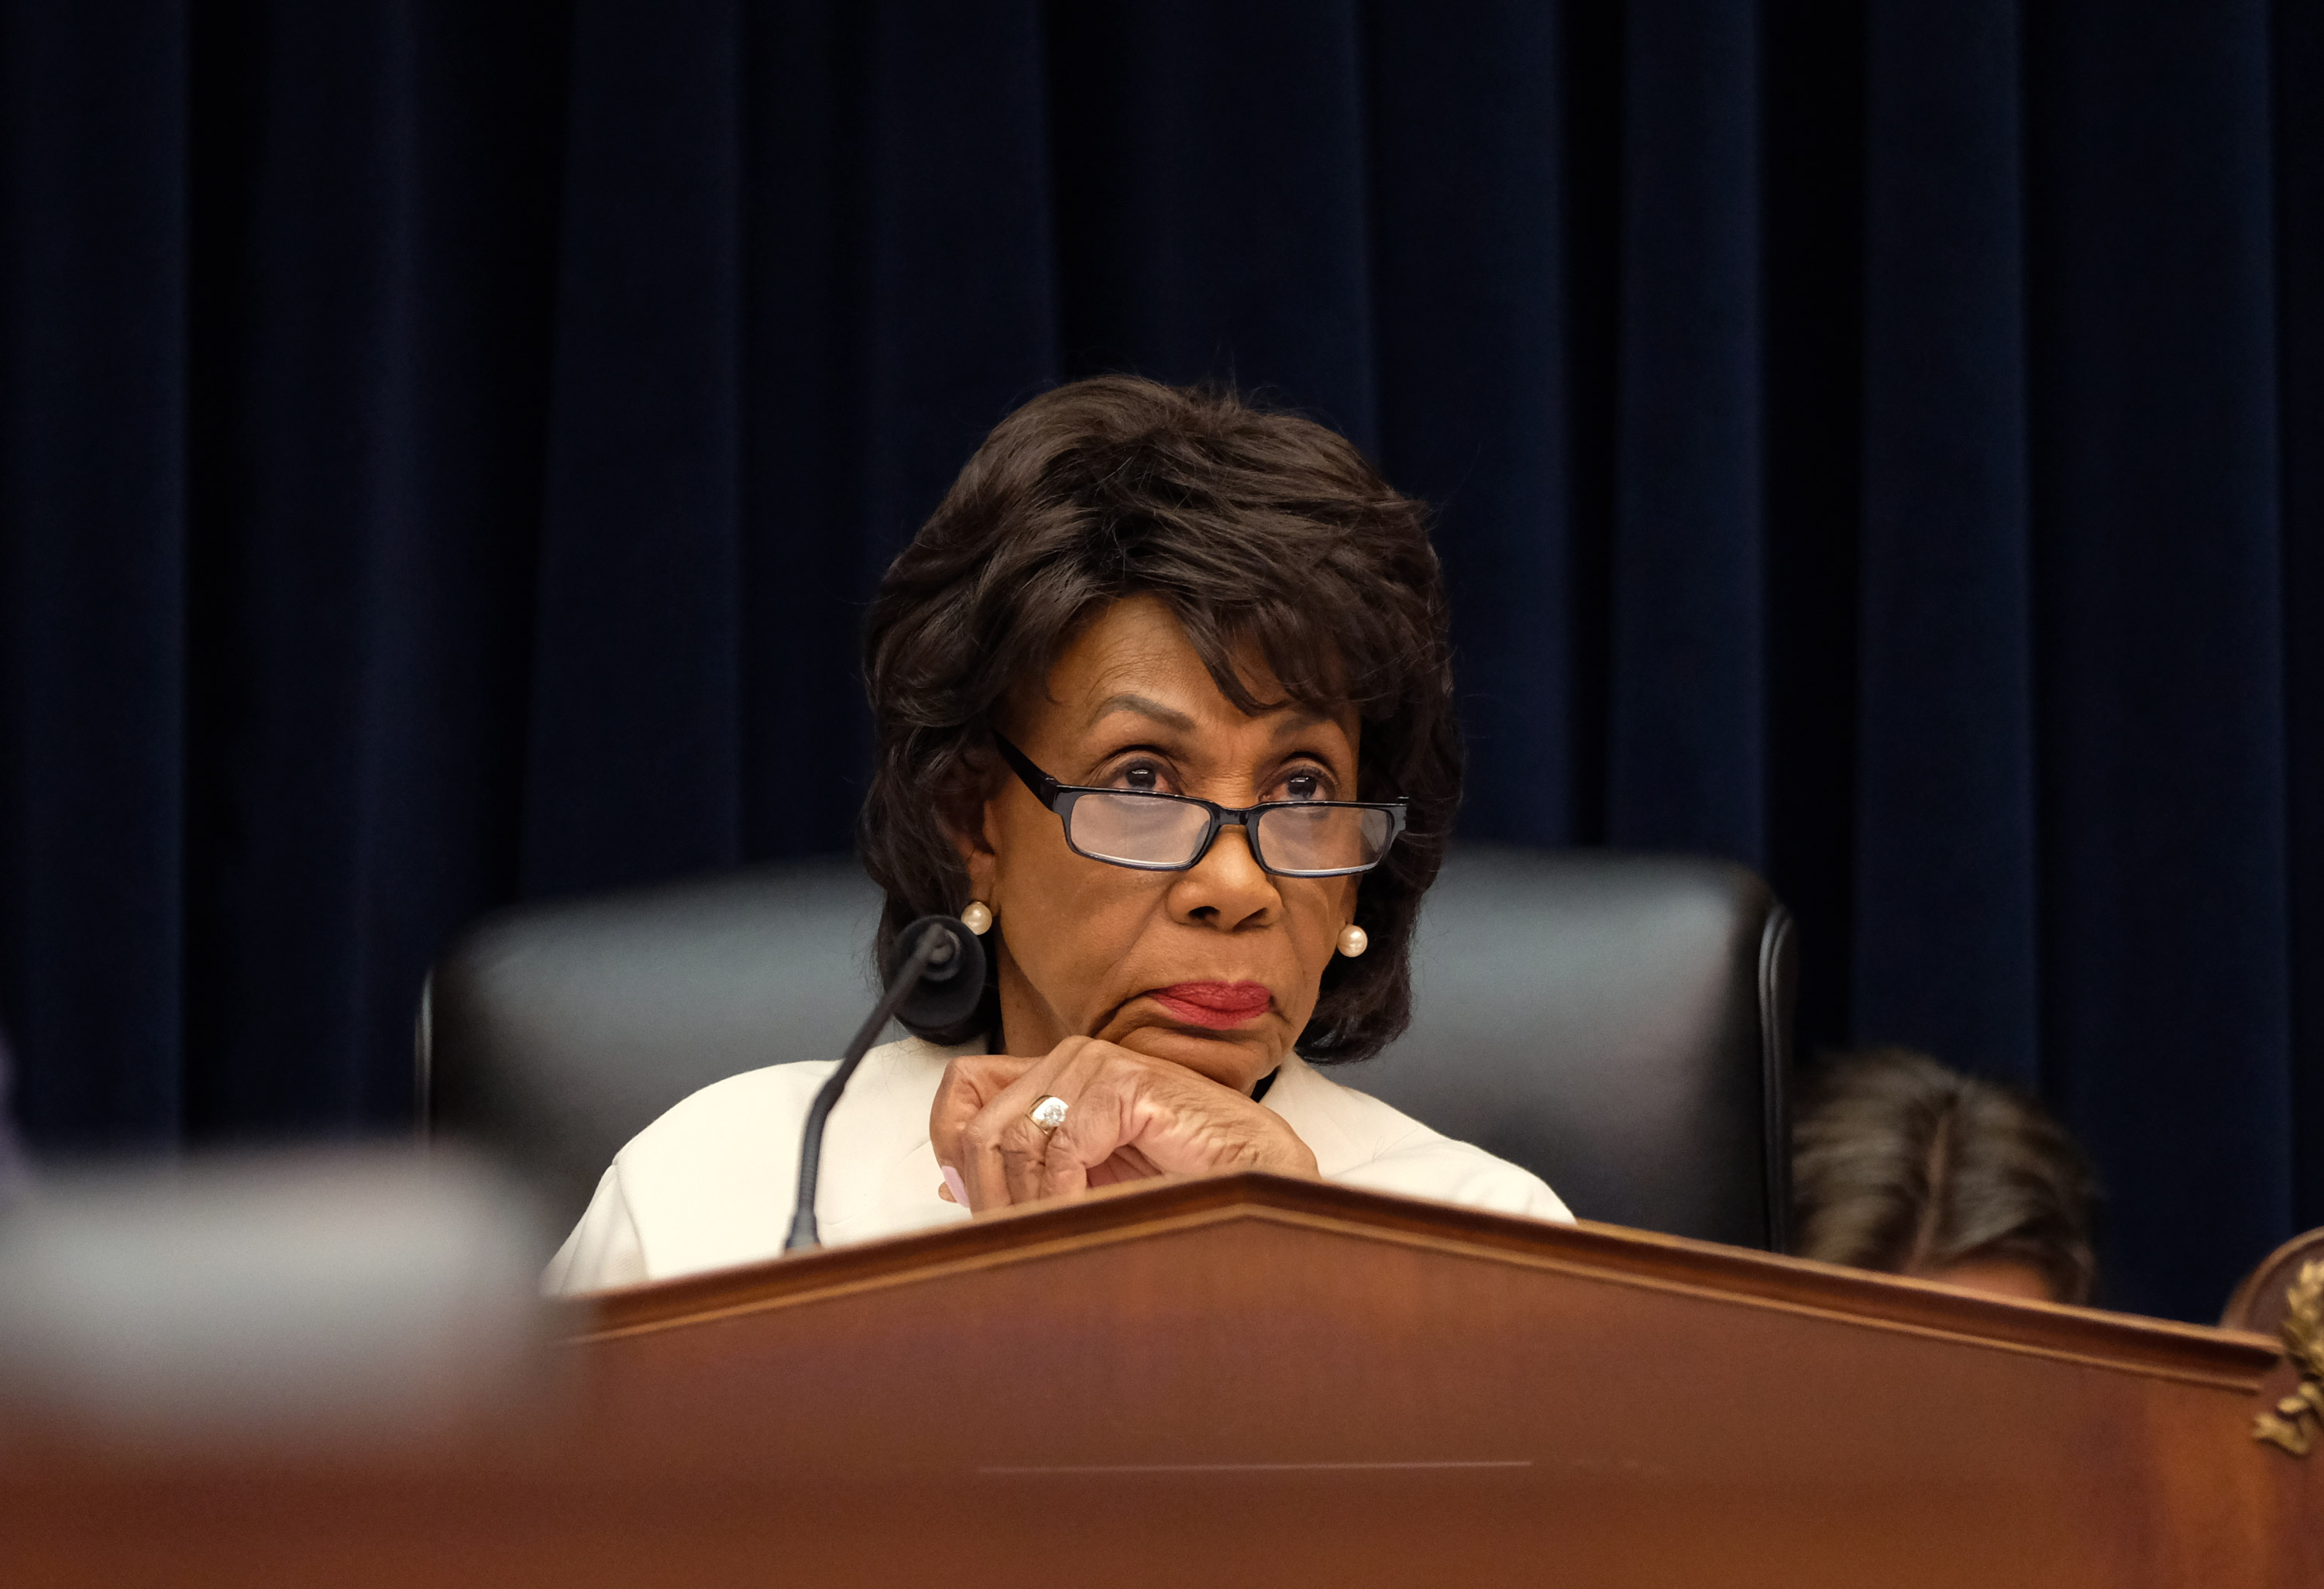 Maxine Waters says she's confident Biden will choose a Black woman as a running mate